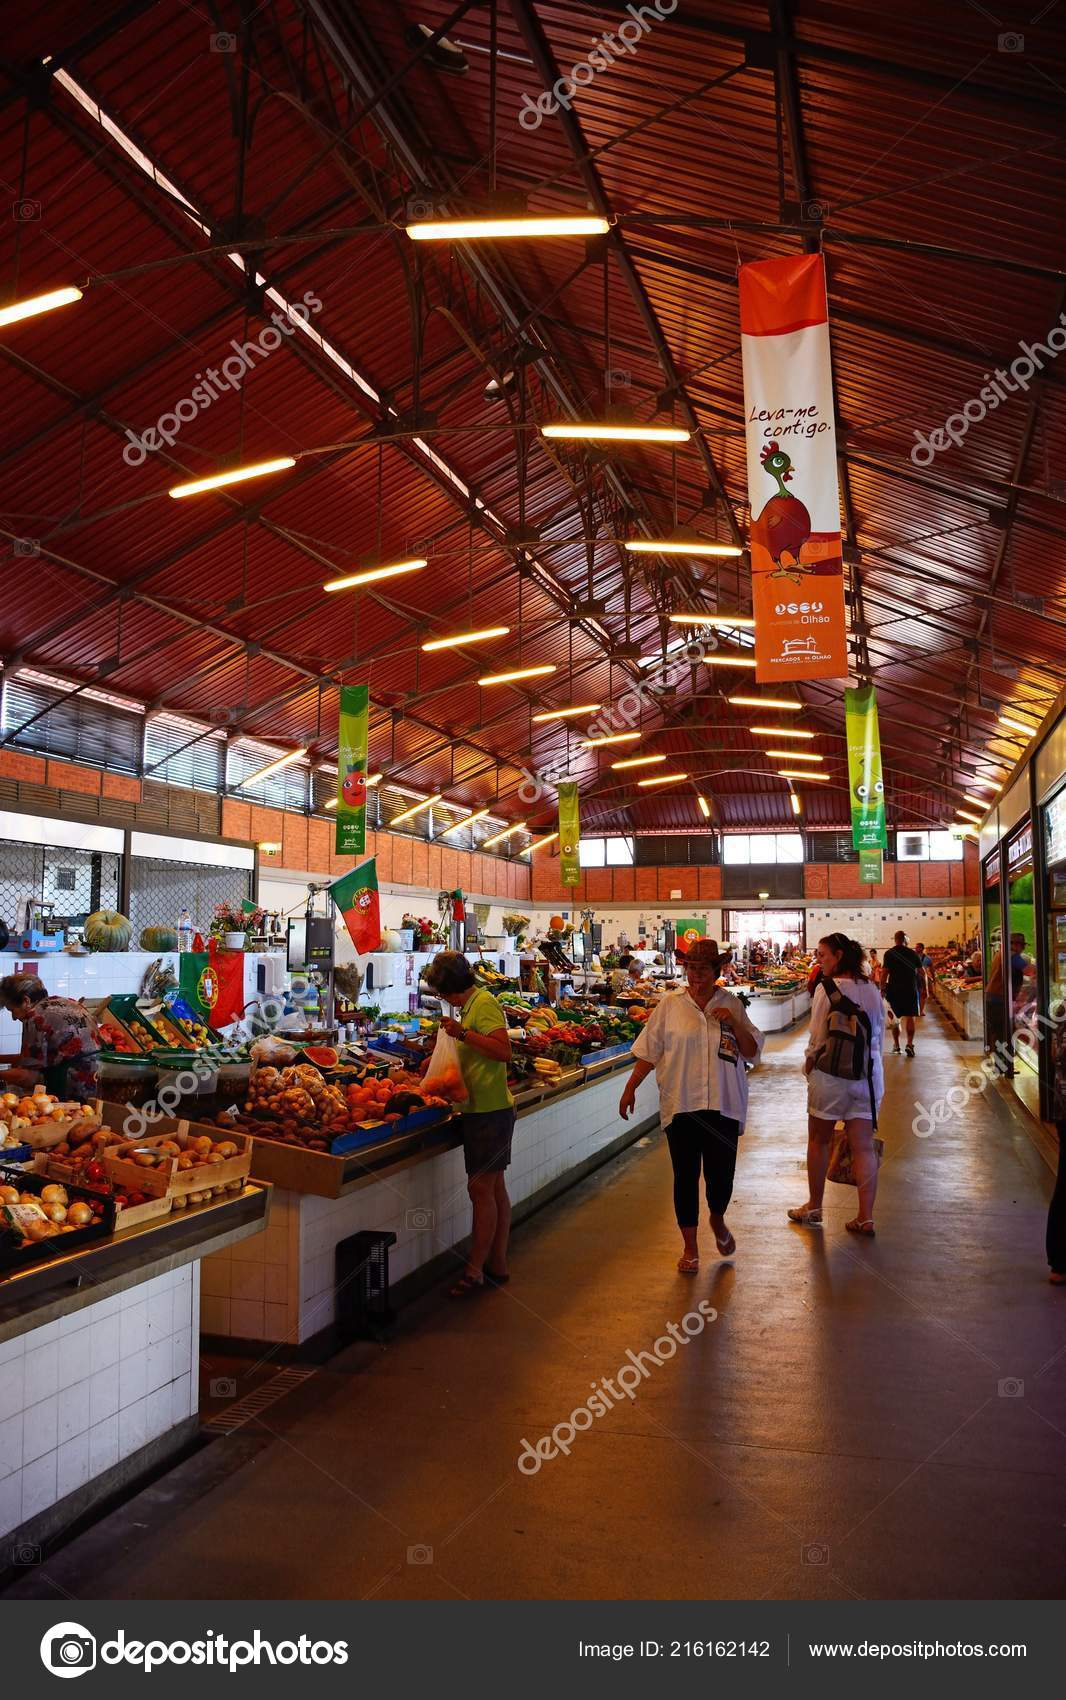 Olhau Portugal June 2017 Shoppers Looking Fresh Produce Sale